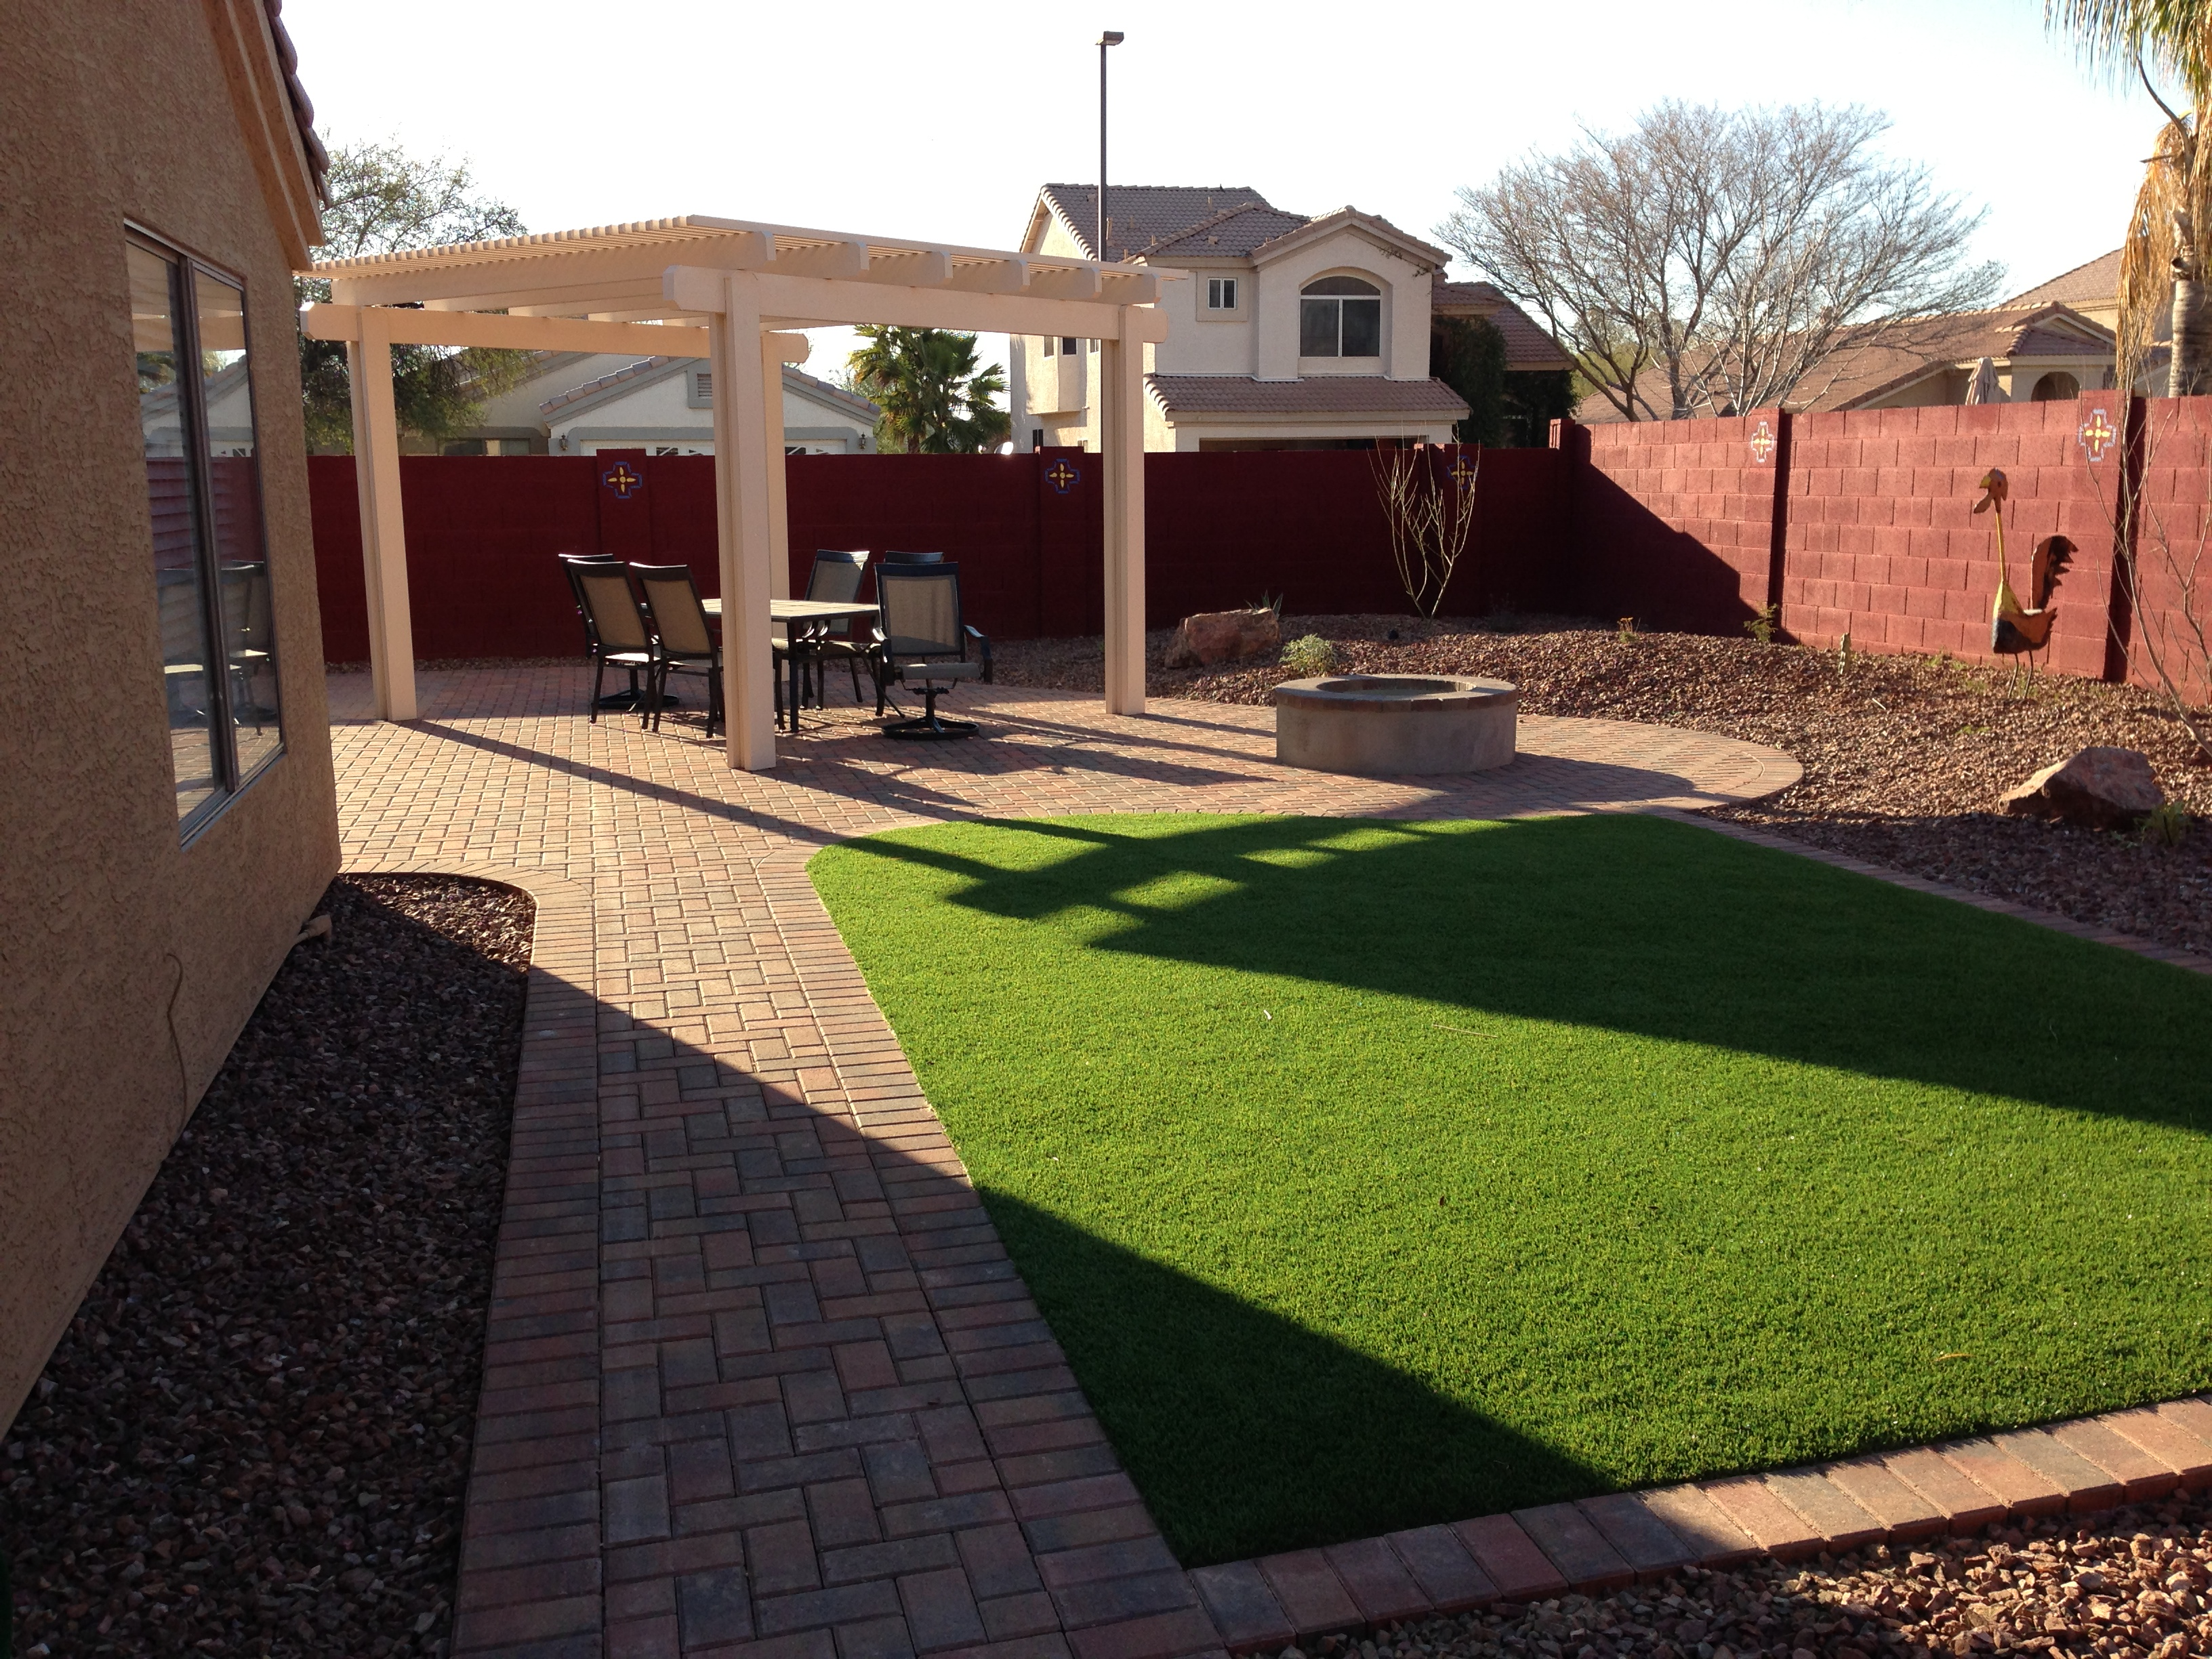 Phoenix area backyard landscape design ideas and news for Outdoor landscaping ideas